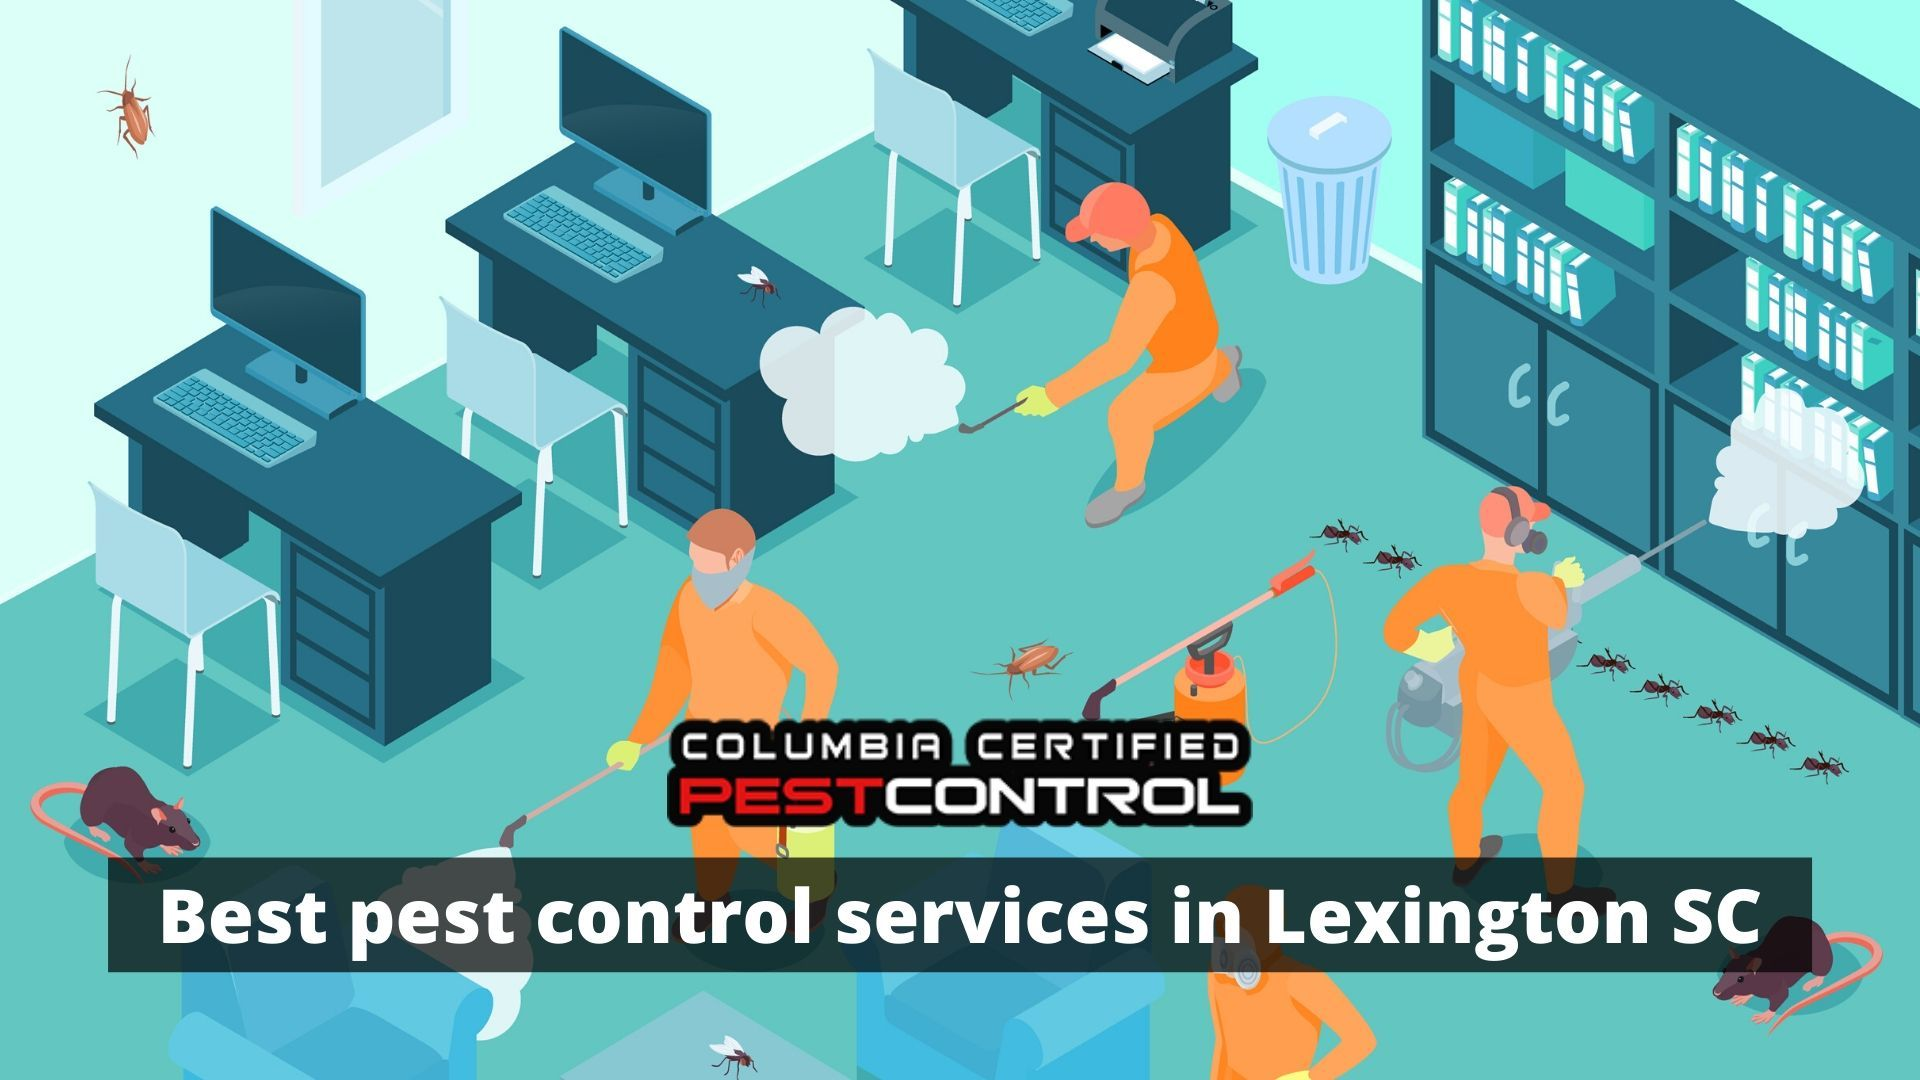 Columbia Certified Pest Control Is A Source Of Commercial Pest Control In Lexington Sc We Provide Premiu In 2020 Best Pest Control Pest Control Services Pest Control